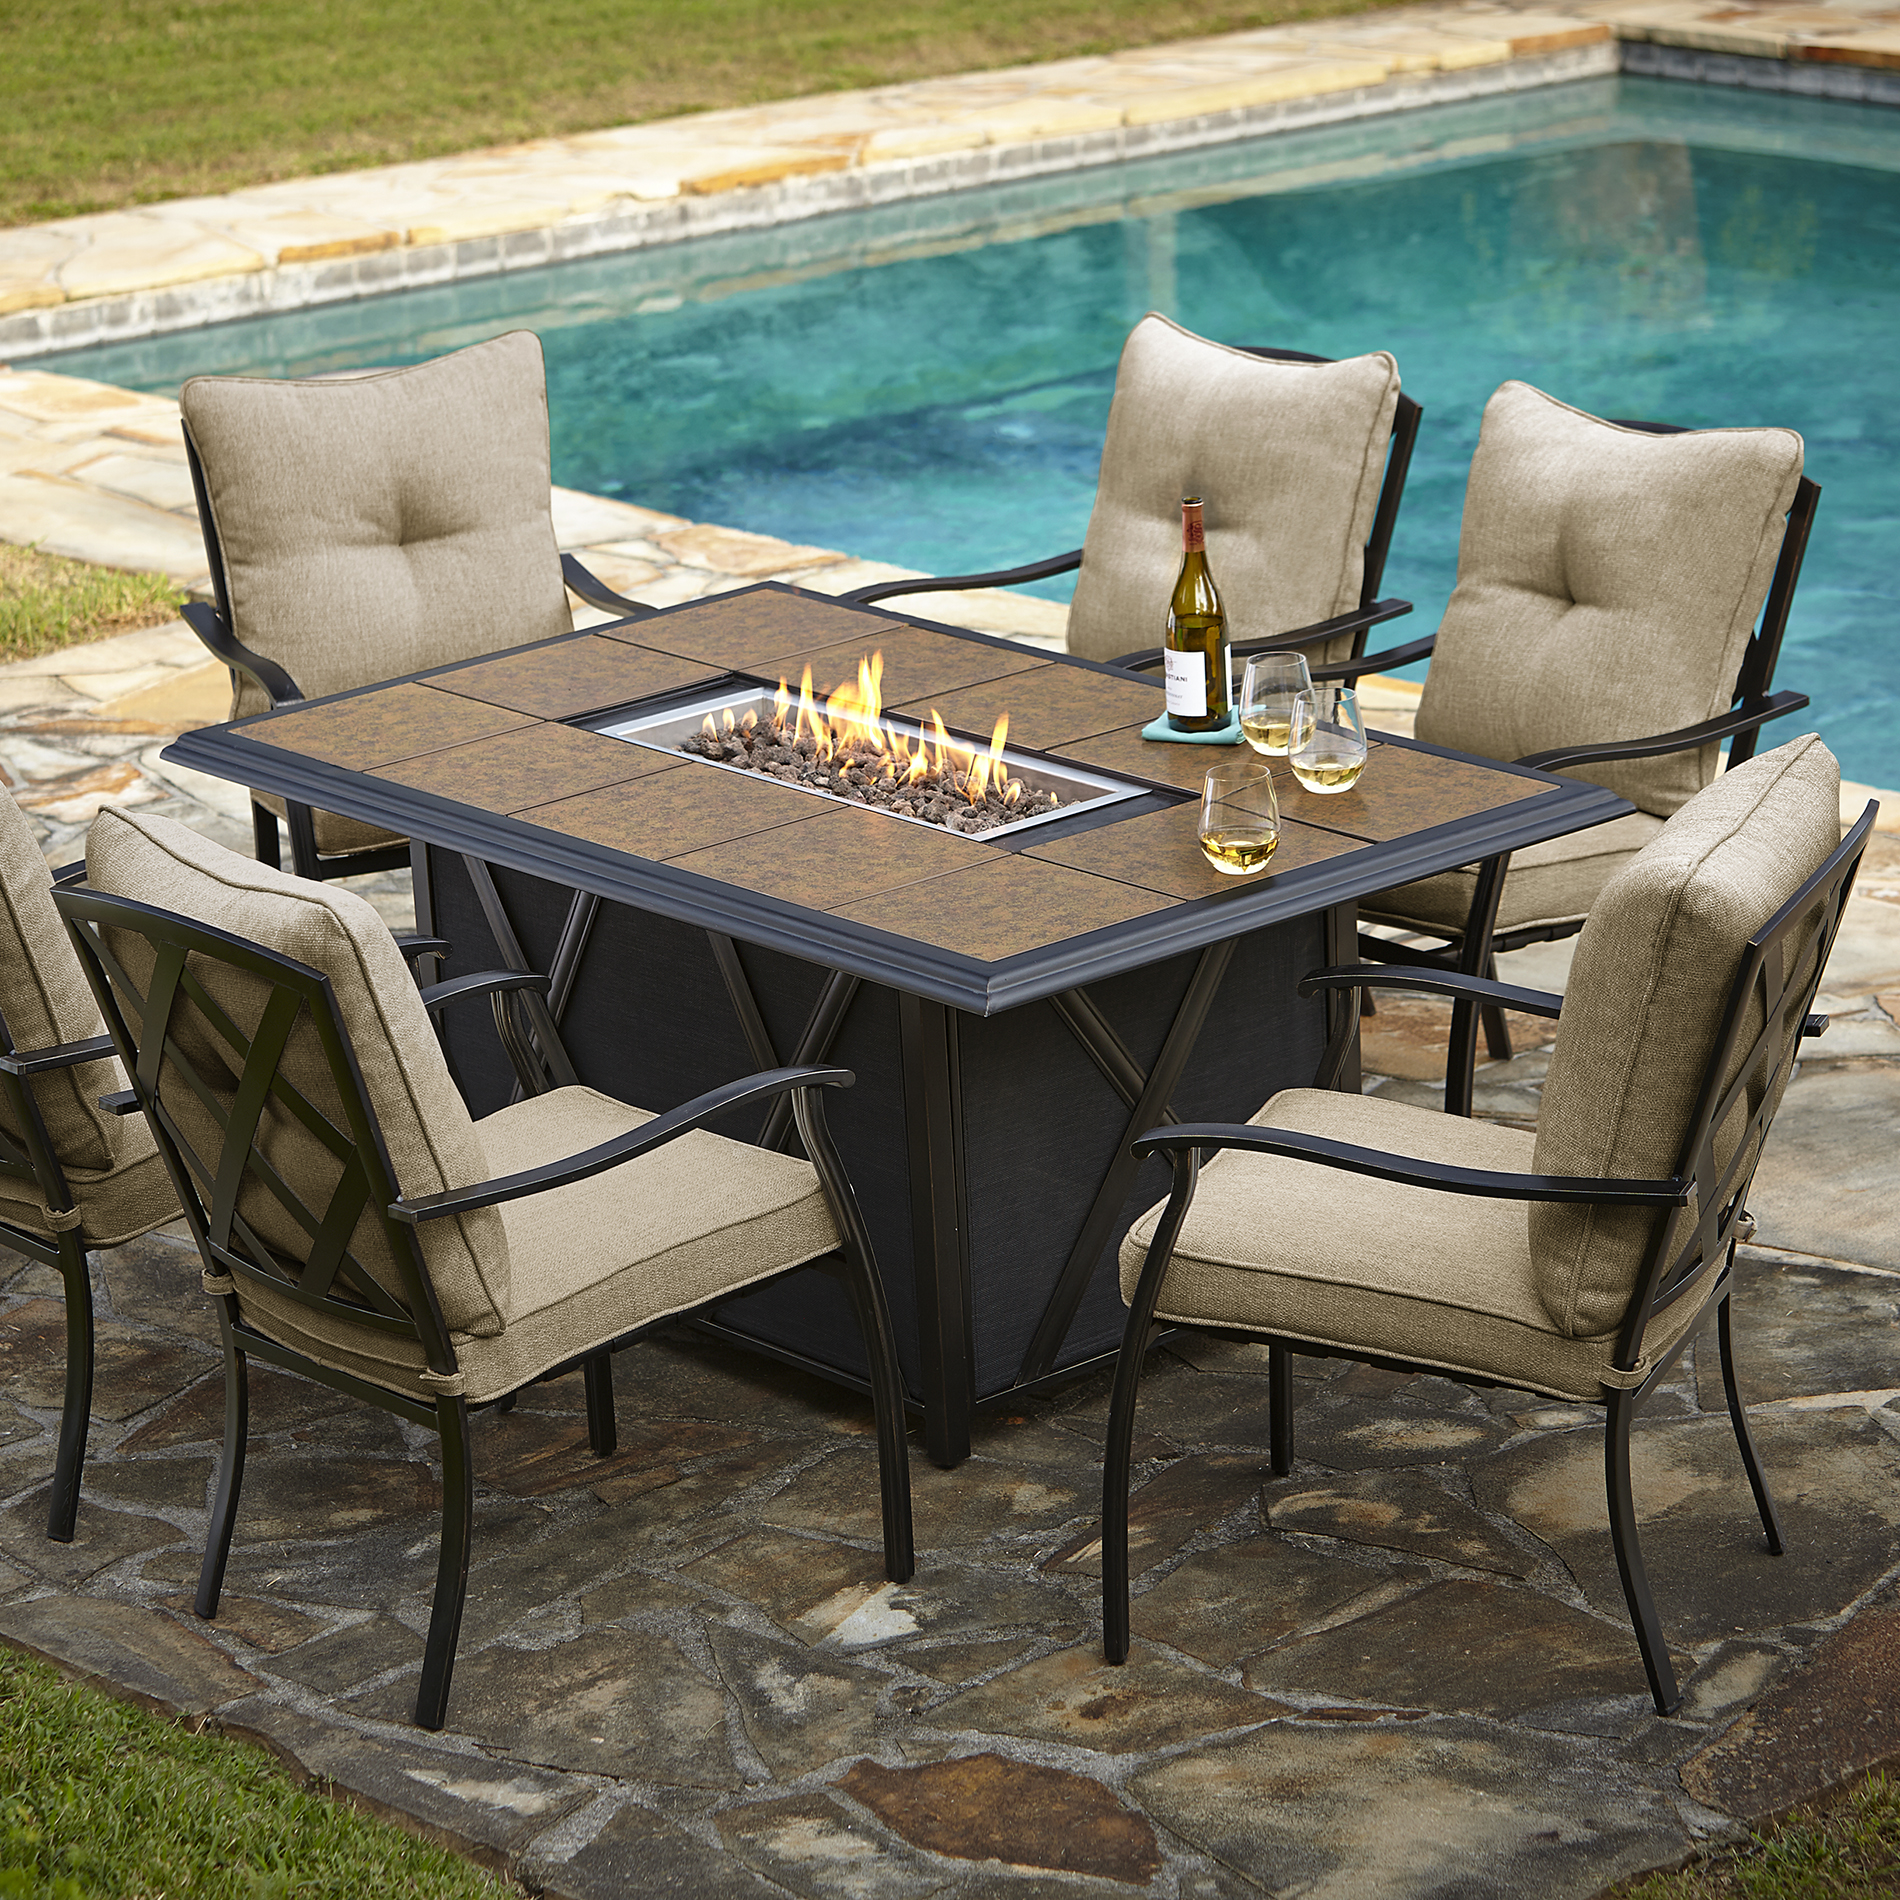 Fire Pit Table And Chairs Set Patio Dining Sets With Fire Pits Photos Pixelmari